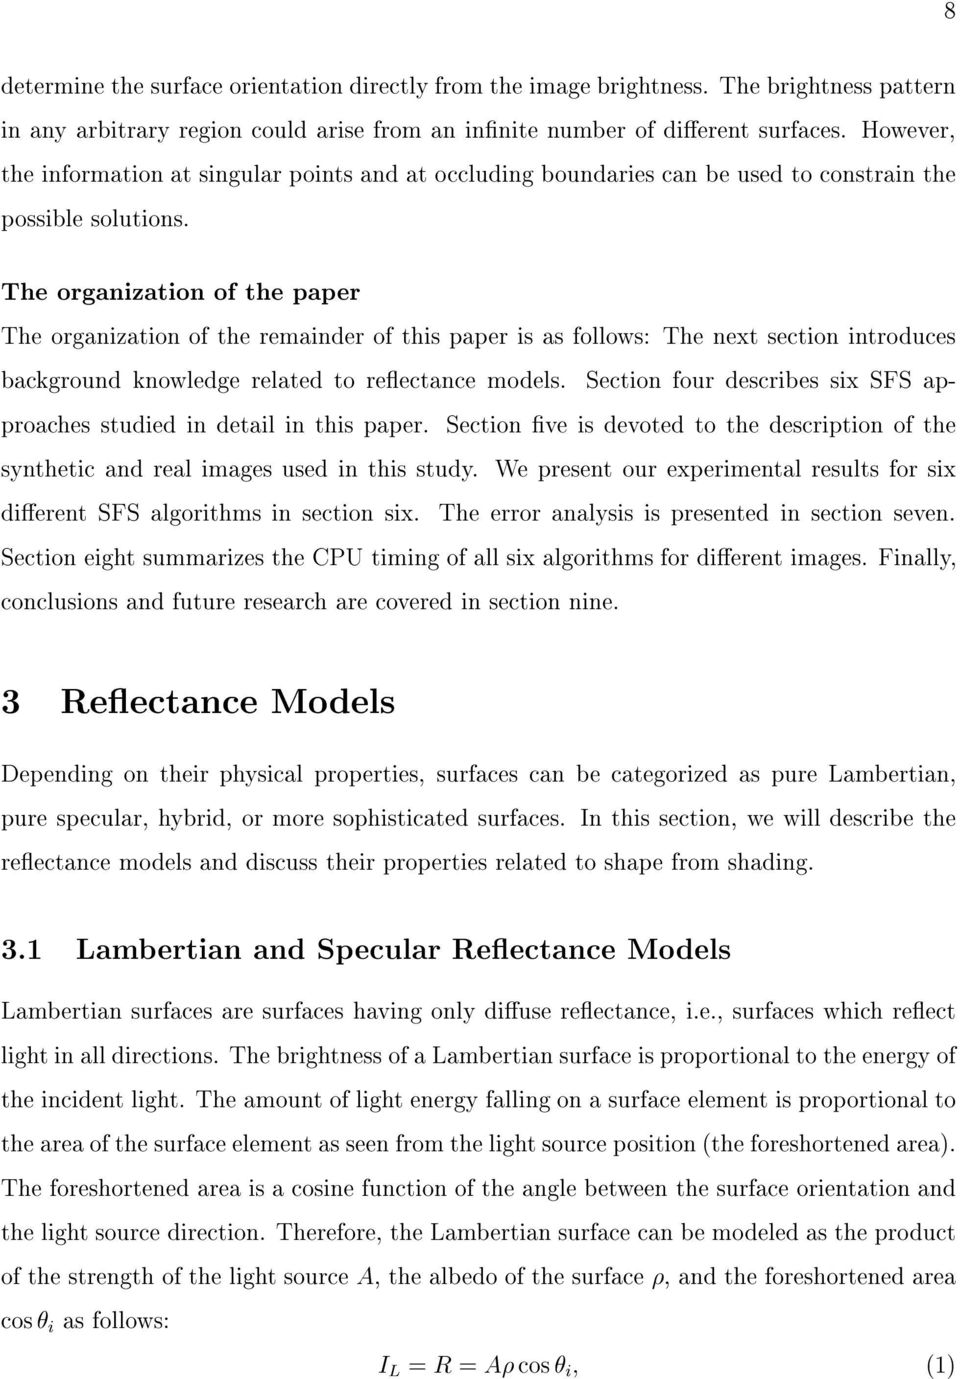 The organization of the paper The organization of the remainder of this paper is as follows: The next section introduces background knowledge related to reectance models.